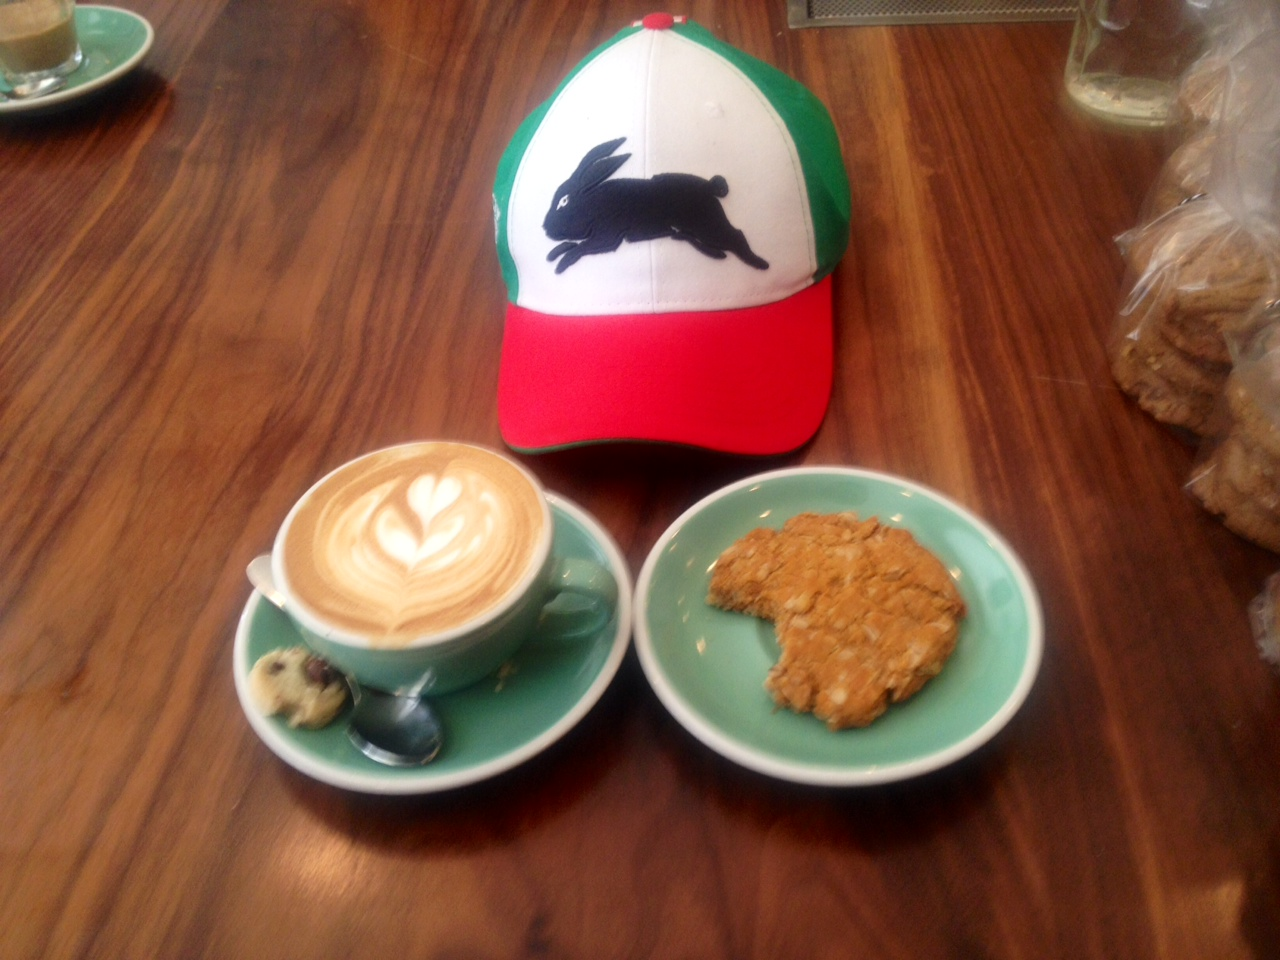 Rabbitohs, Flat White, and ANZAC's: Three icons of Australia!